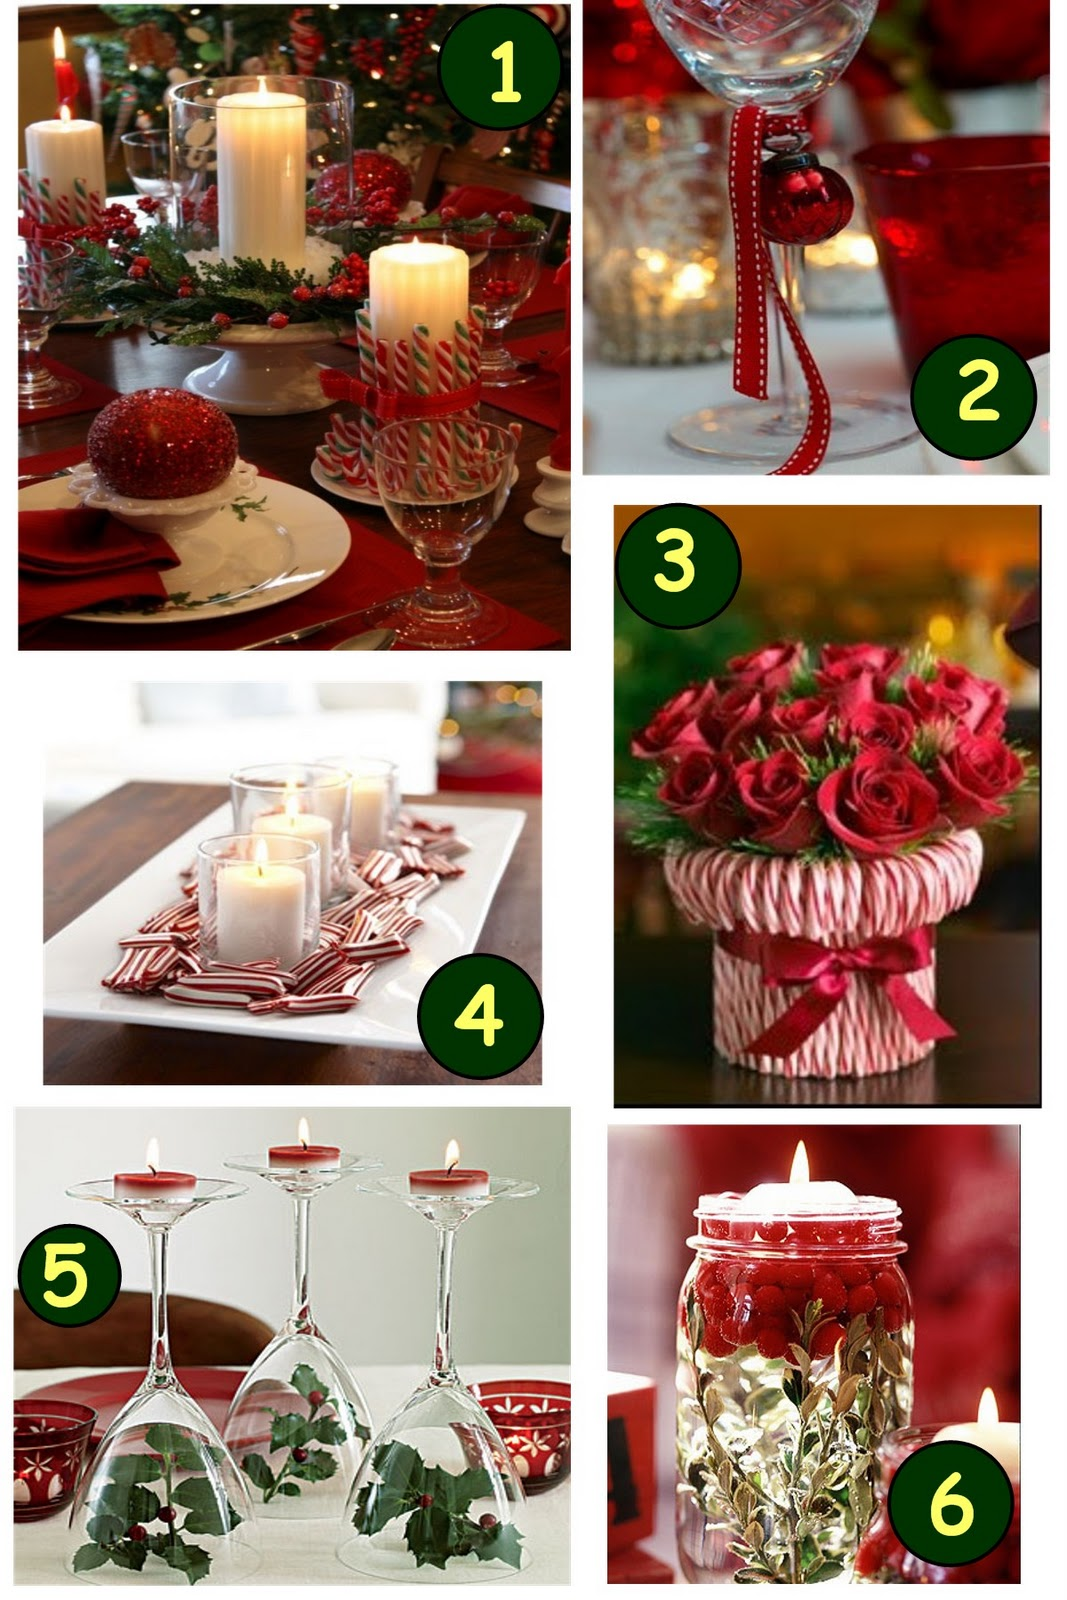 25 Tempting Christmas Dinner Ideas & Holiday Table Decorating Ideas Christmas - Elitflat